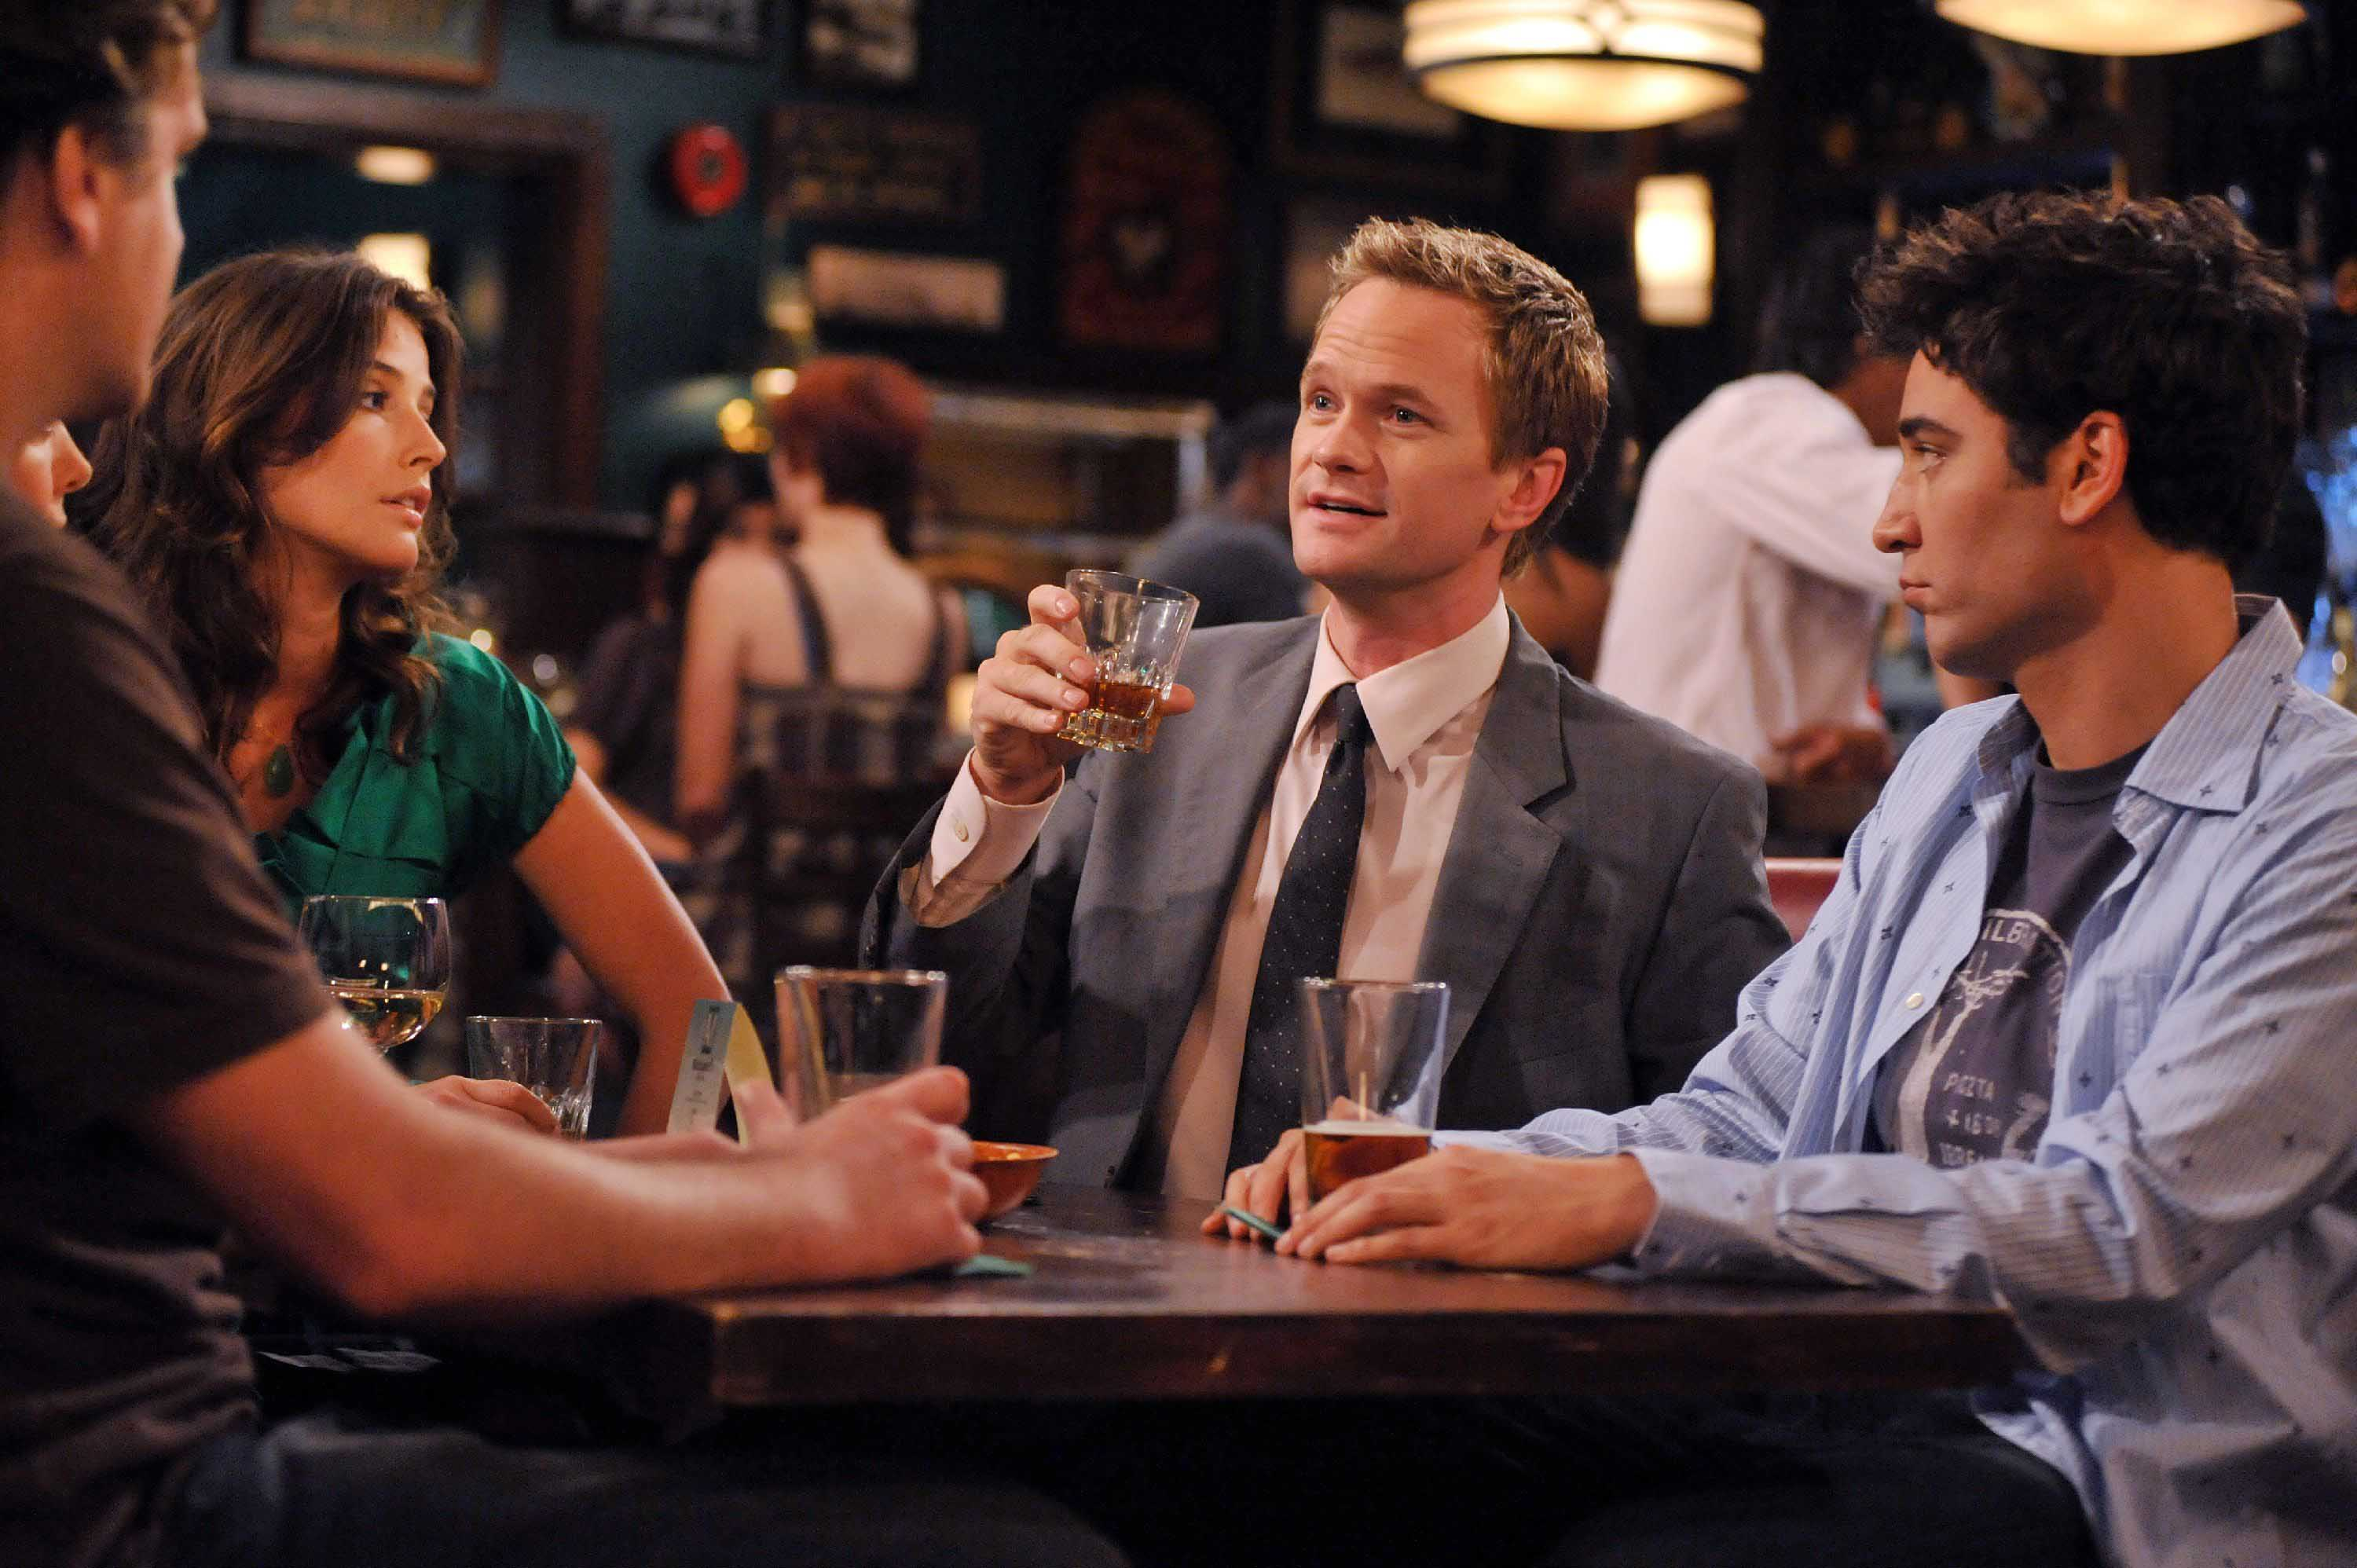 """Do I Know You"" -- As Stella responds to Ted's (Josh Radnor) proposal, Barney (Neil Patrick Harris) realizes that he's in love with Robin (Cobie Smulders), on the fourth season premiere of HOW I MET YOUR MOTHER, Monday, Sept. 22 (8:30-9:00 PM, ET/PT) on the CBS Television Network. Photo: Eric McCandless/FOX ©2008 Fox Television. All Rights Reserved."